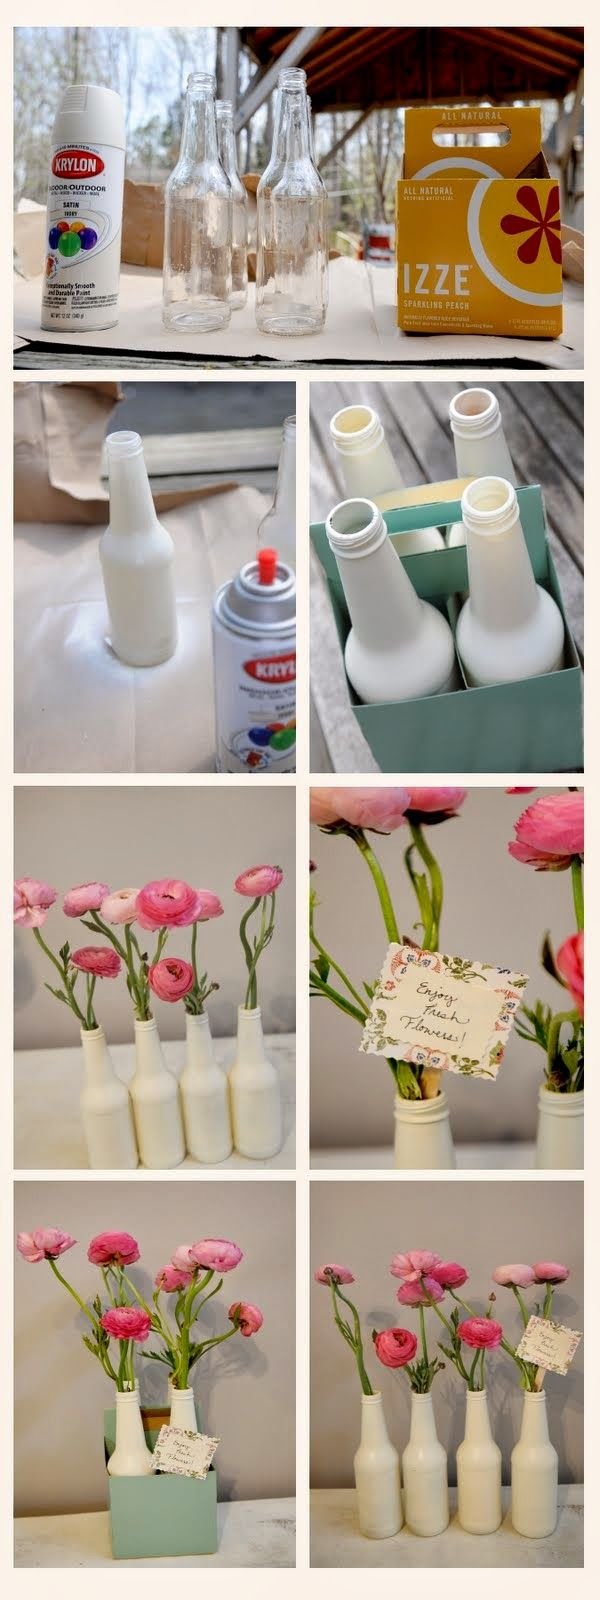 diy crafts: Spray Bottles DIY Project Part One